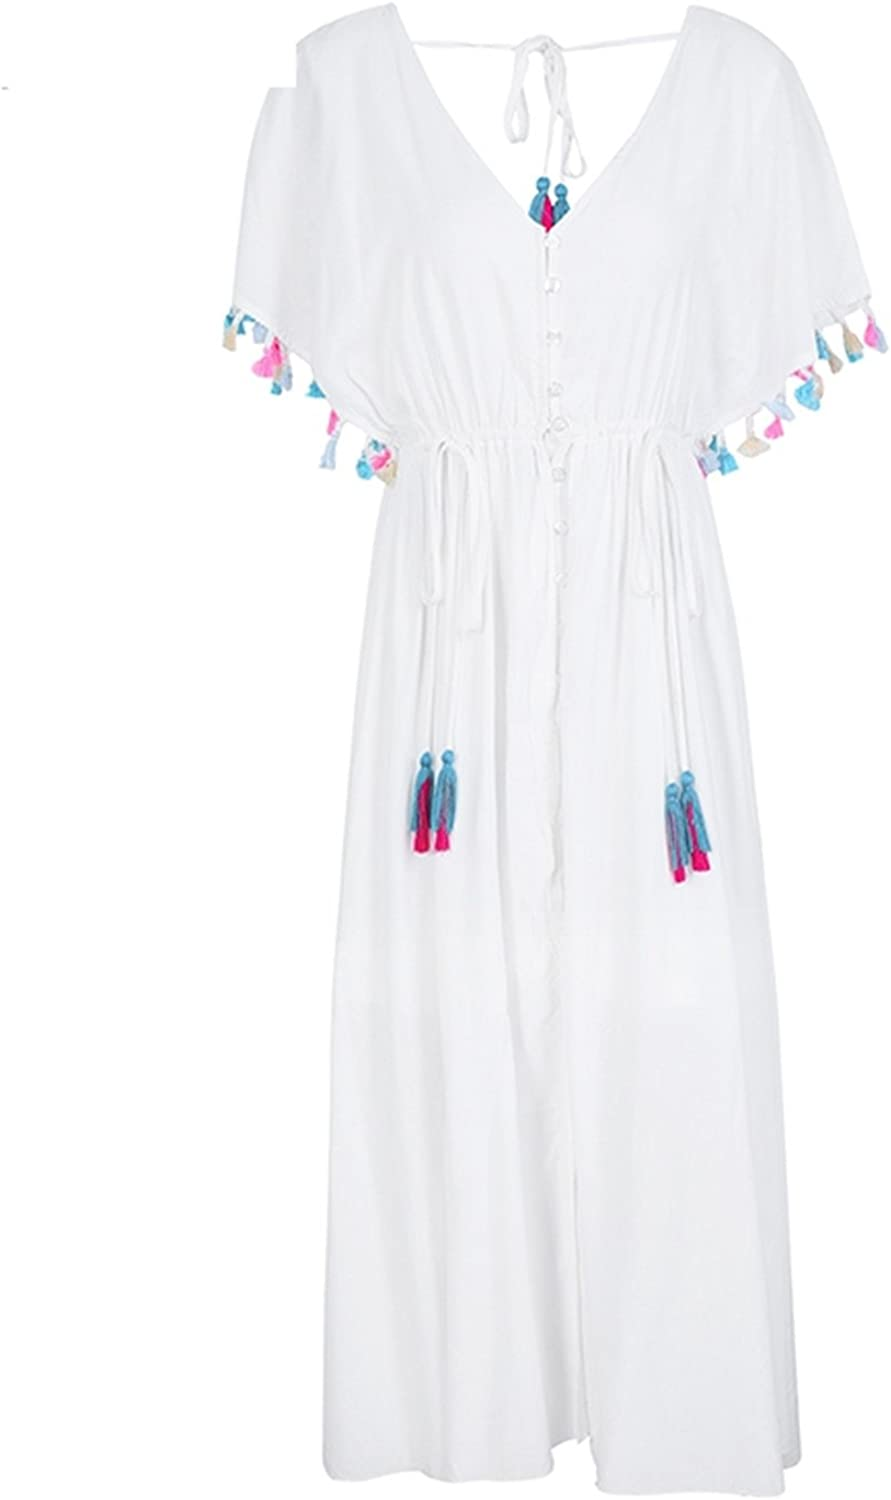 Glugerge Backless v Neck Summer Dress Women Lace up Tassel Maxi Dress Casual 2018 Spring White Long Dress Female